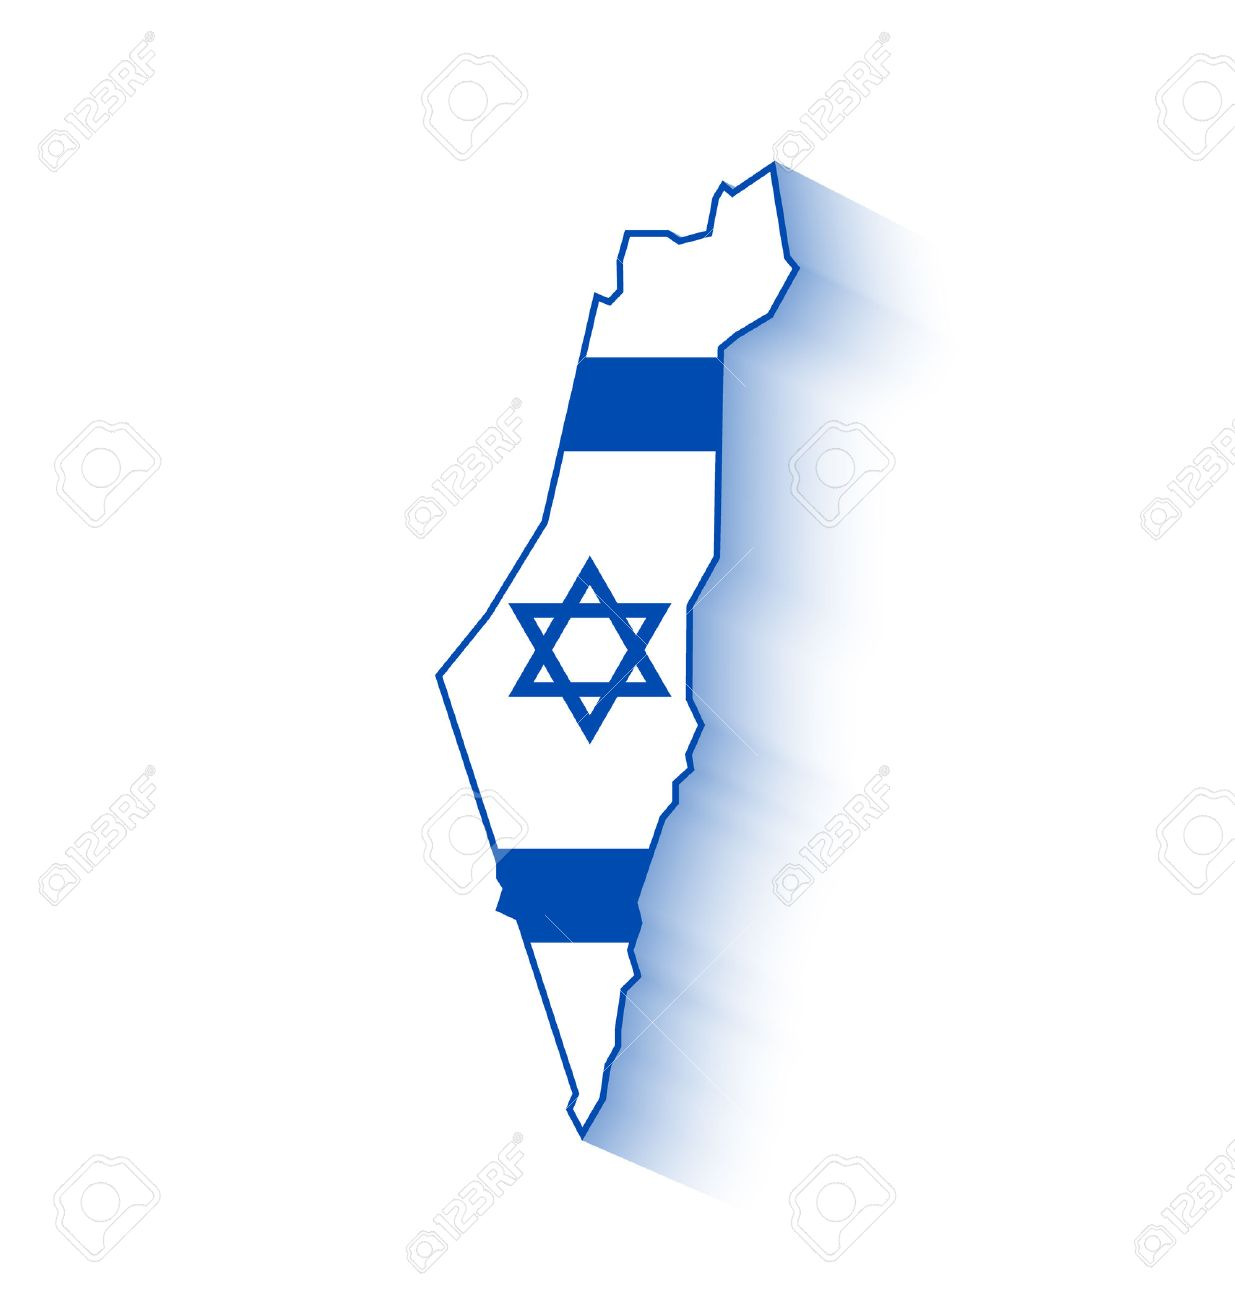 Israel Map With Israeli Flag Inside Of Shape With Long Shadow - Israel map